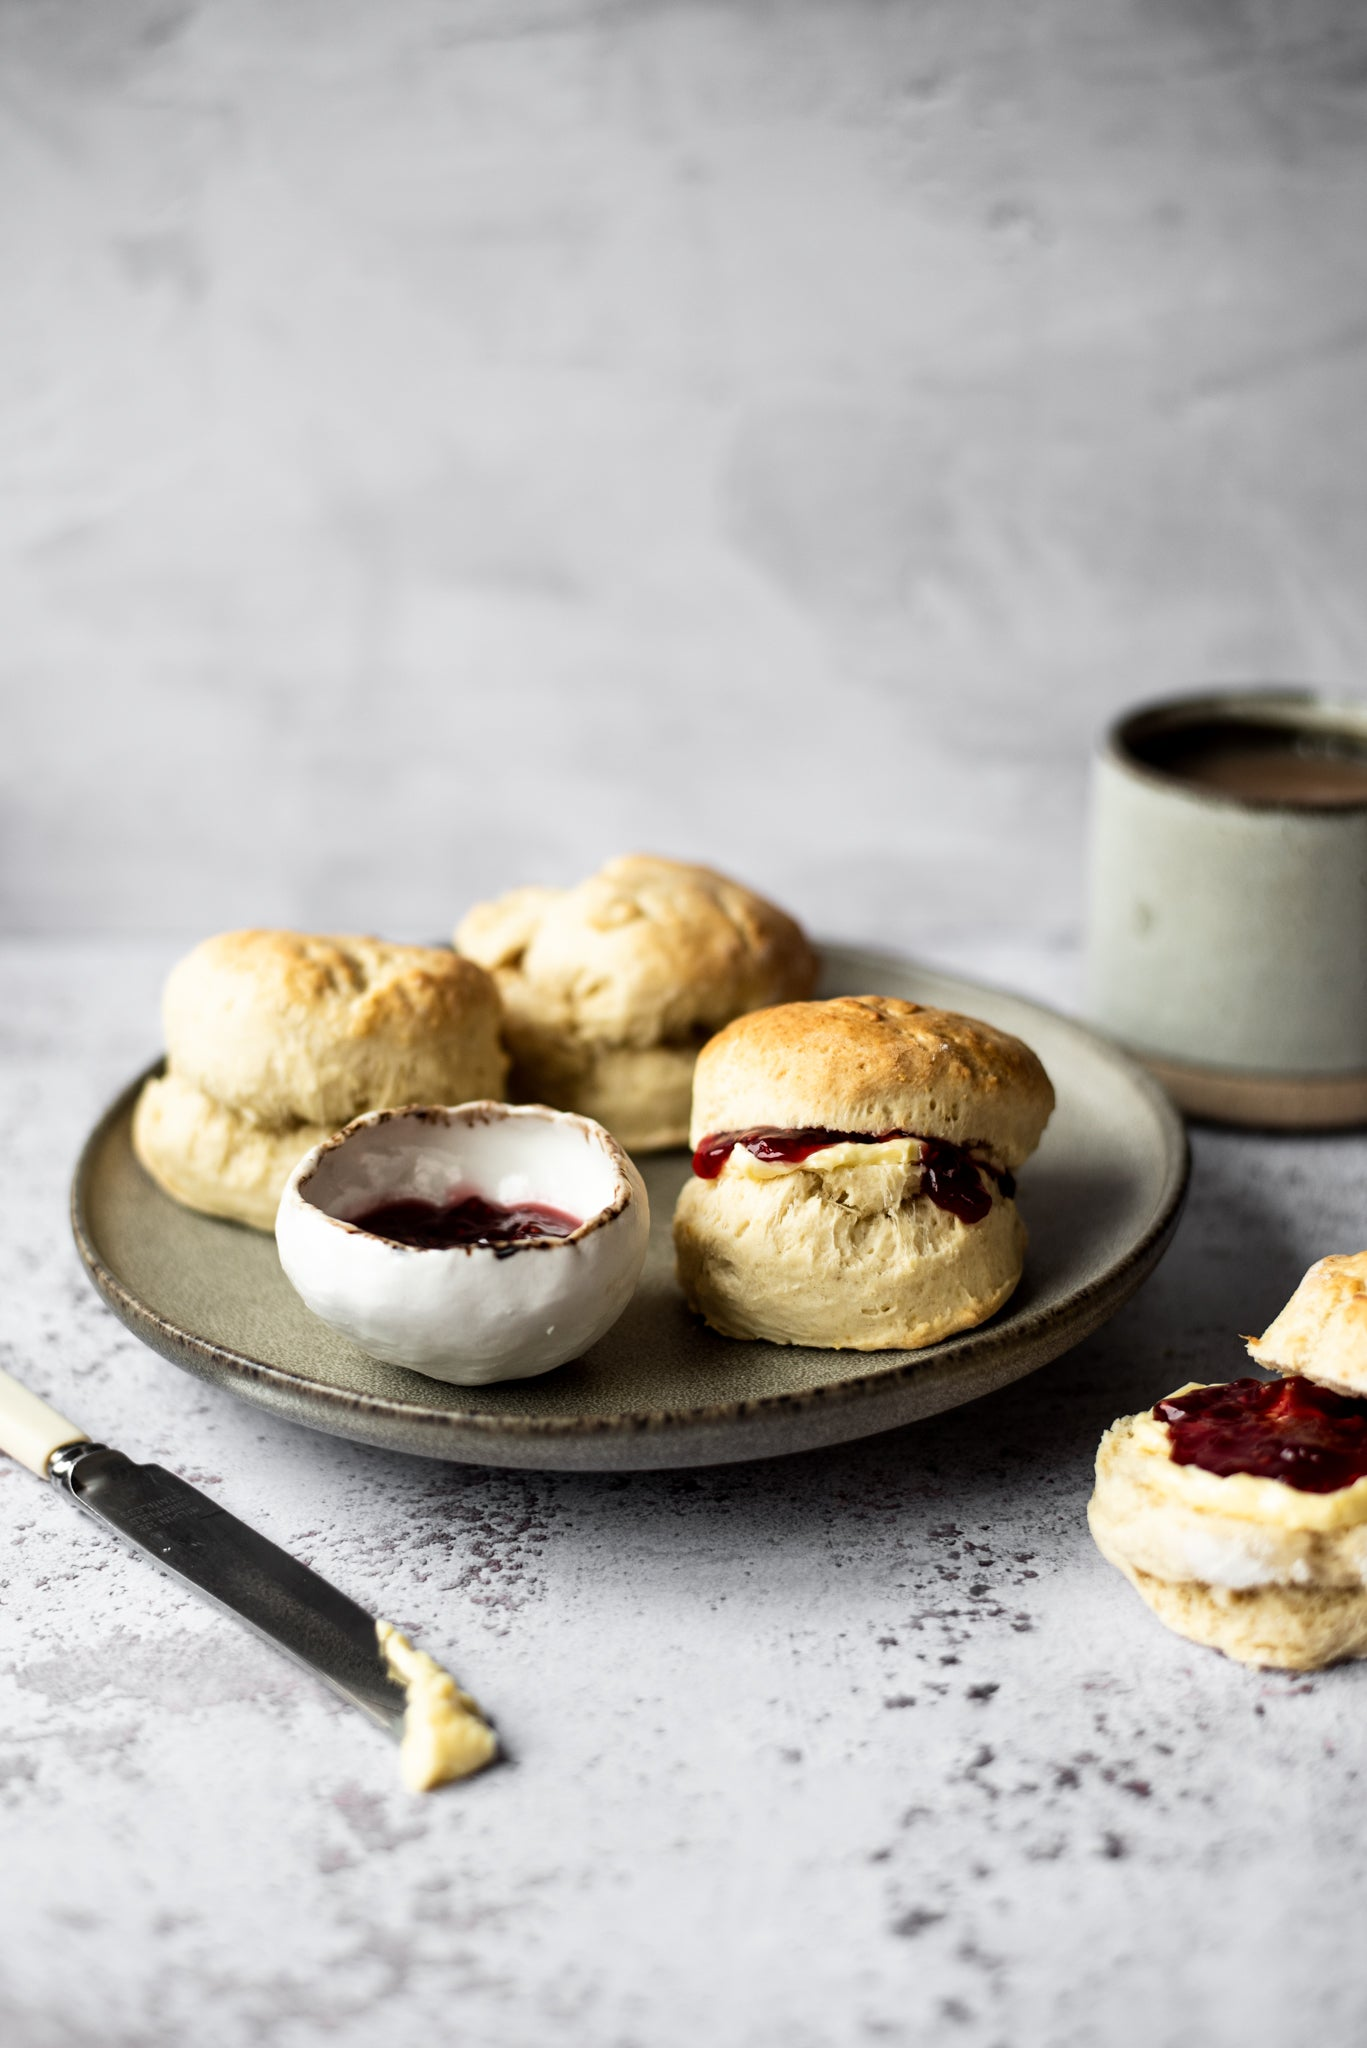 Three scones on a plate filled with jam and cream with pot of jam and knife with cream